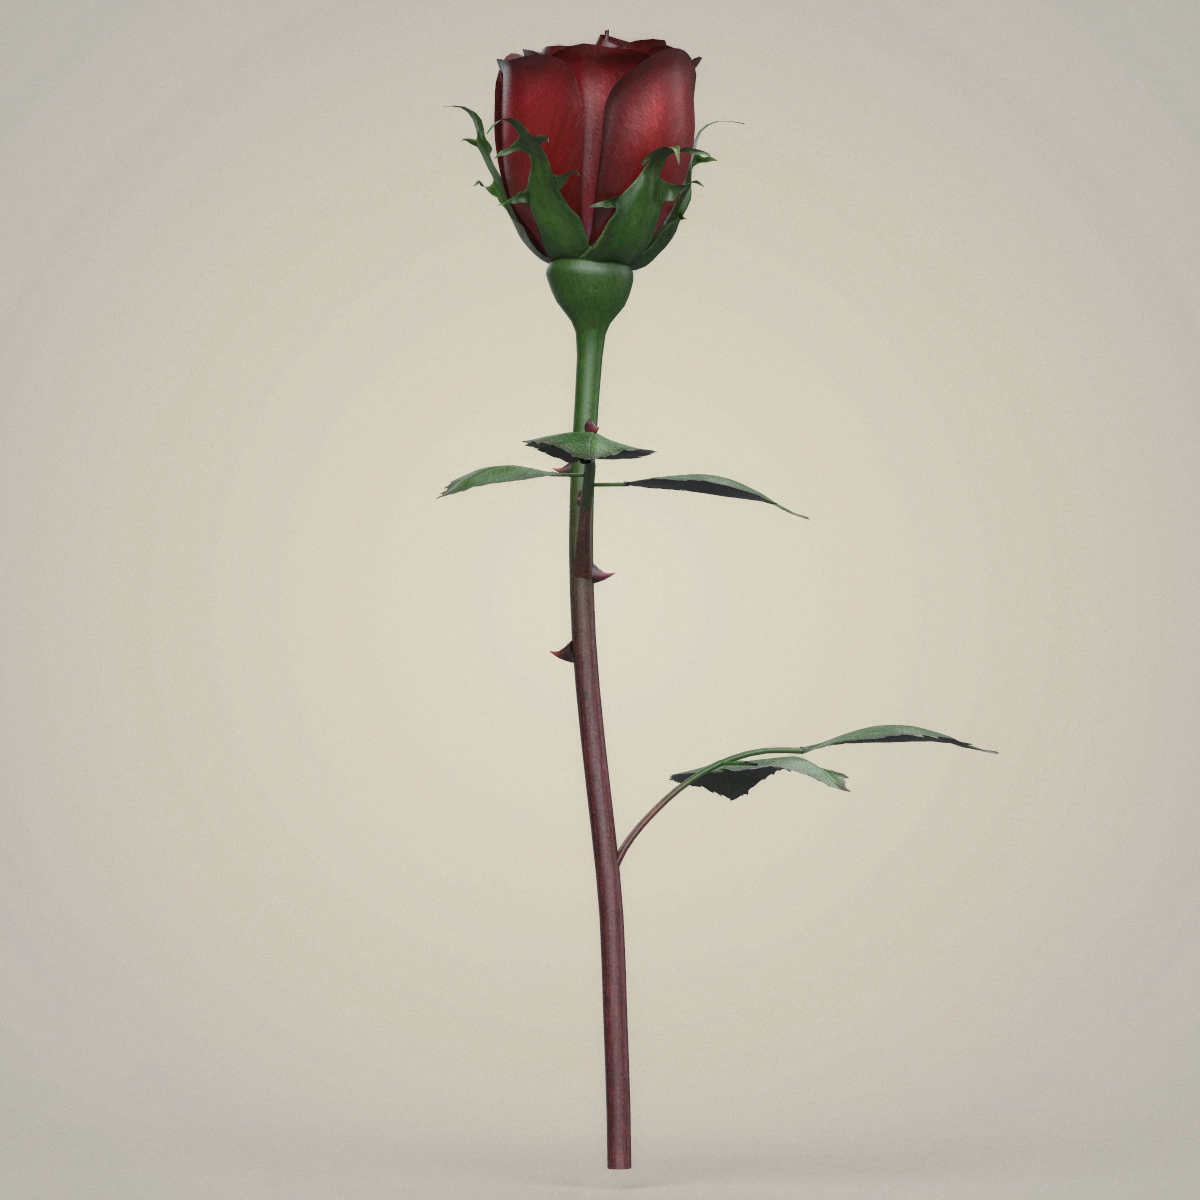 rose flower collection 3d model max fbx c4d ma mb obj 252763